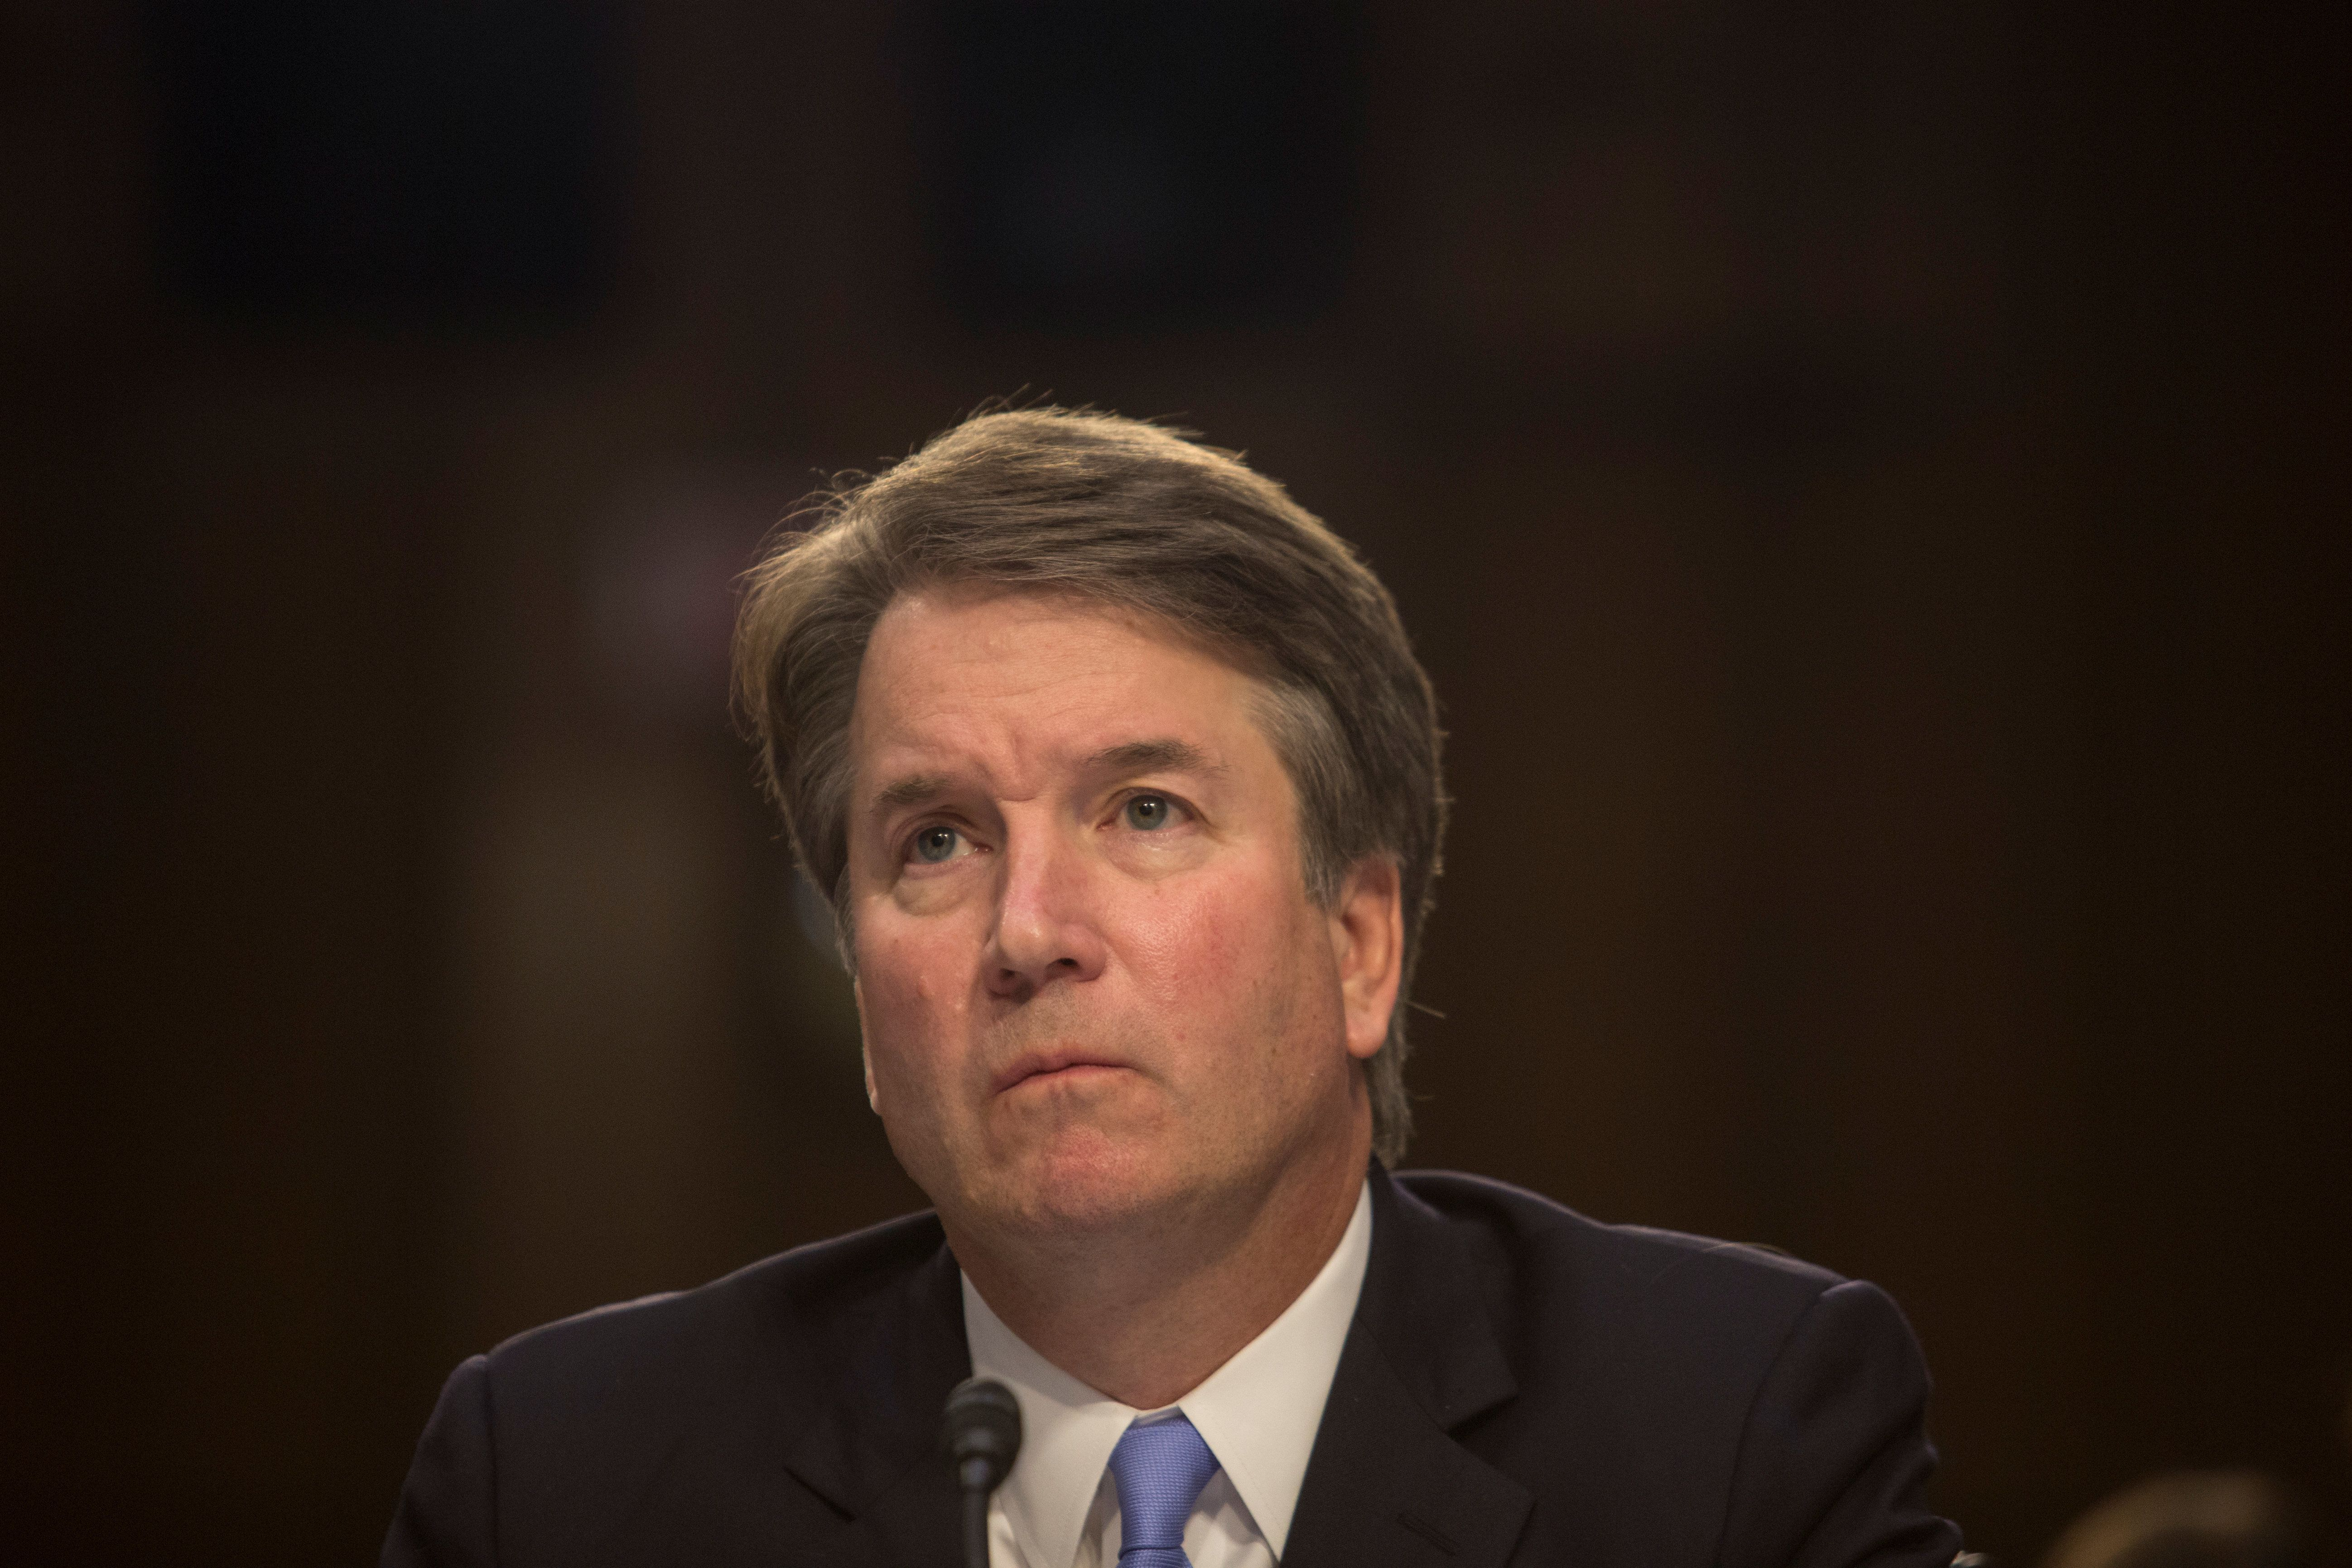 Brett Kavanaugh May Lose A Job. By Her Account, Christine Blasey Ford Lost Much More.